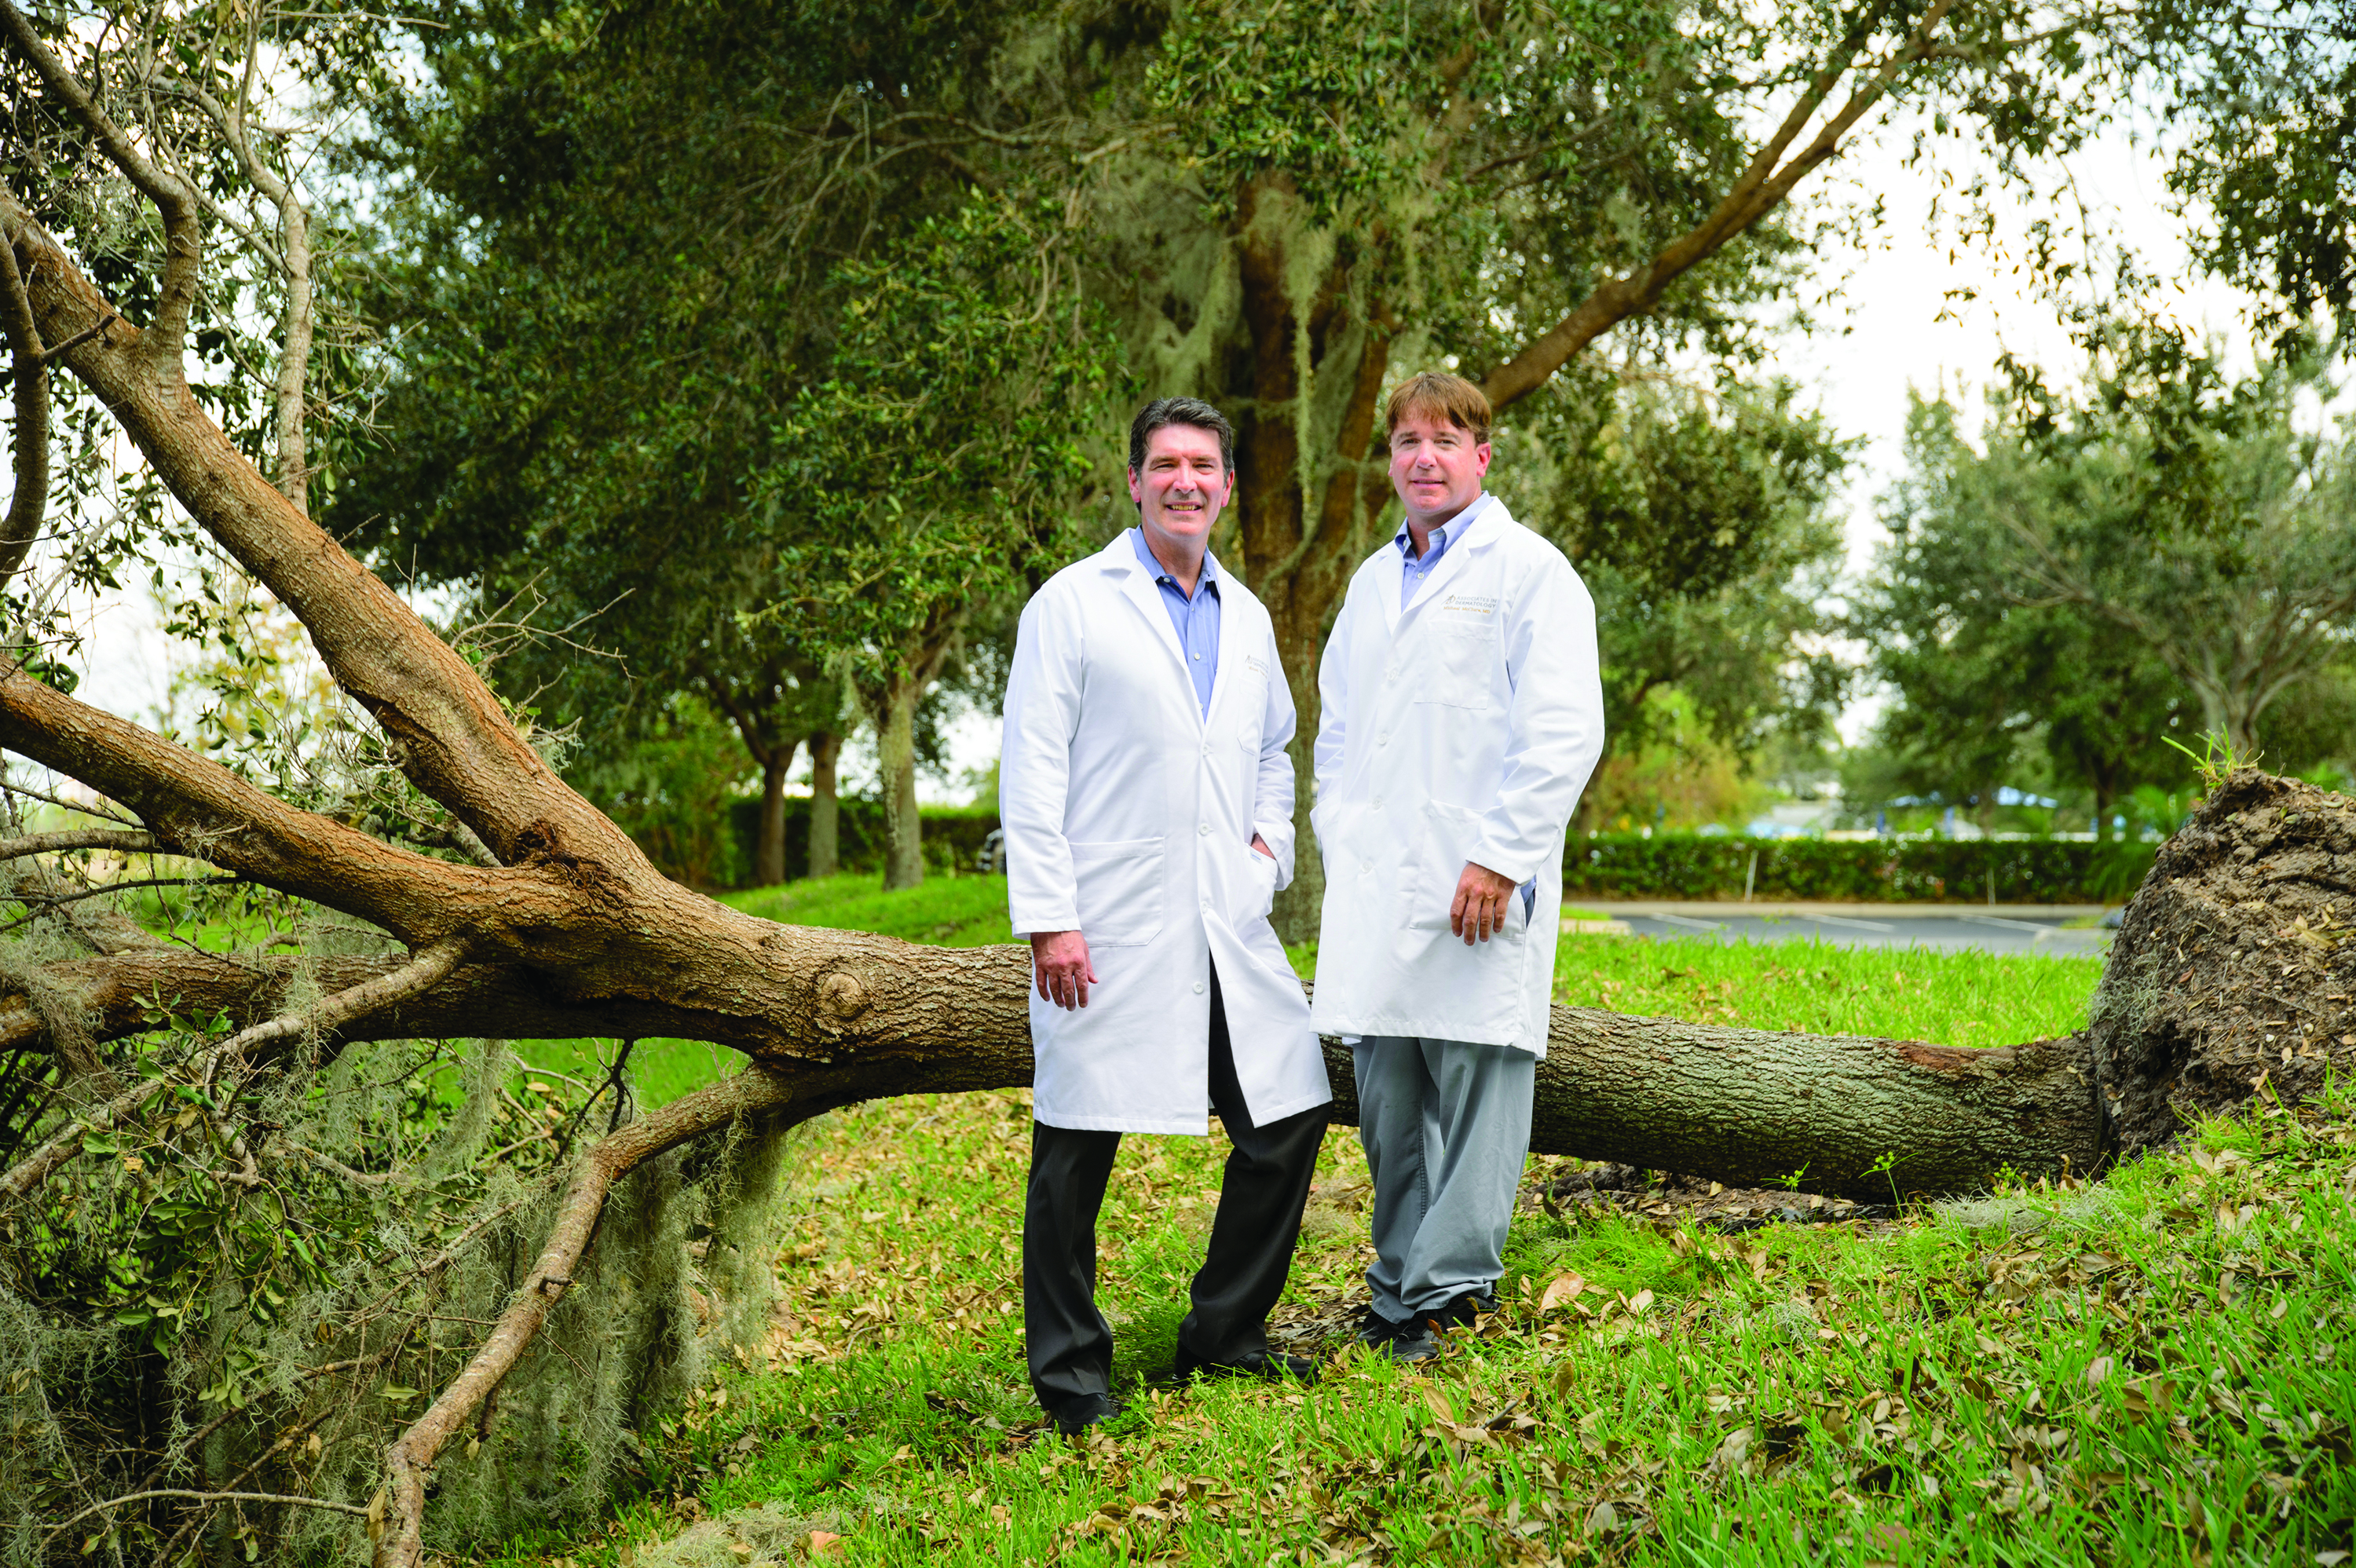 Associates in Dermatology: Deep Roots in the Community